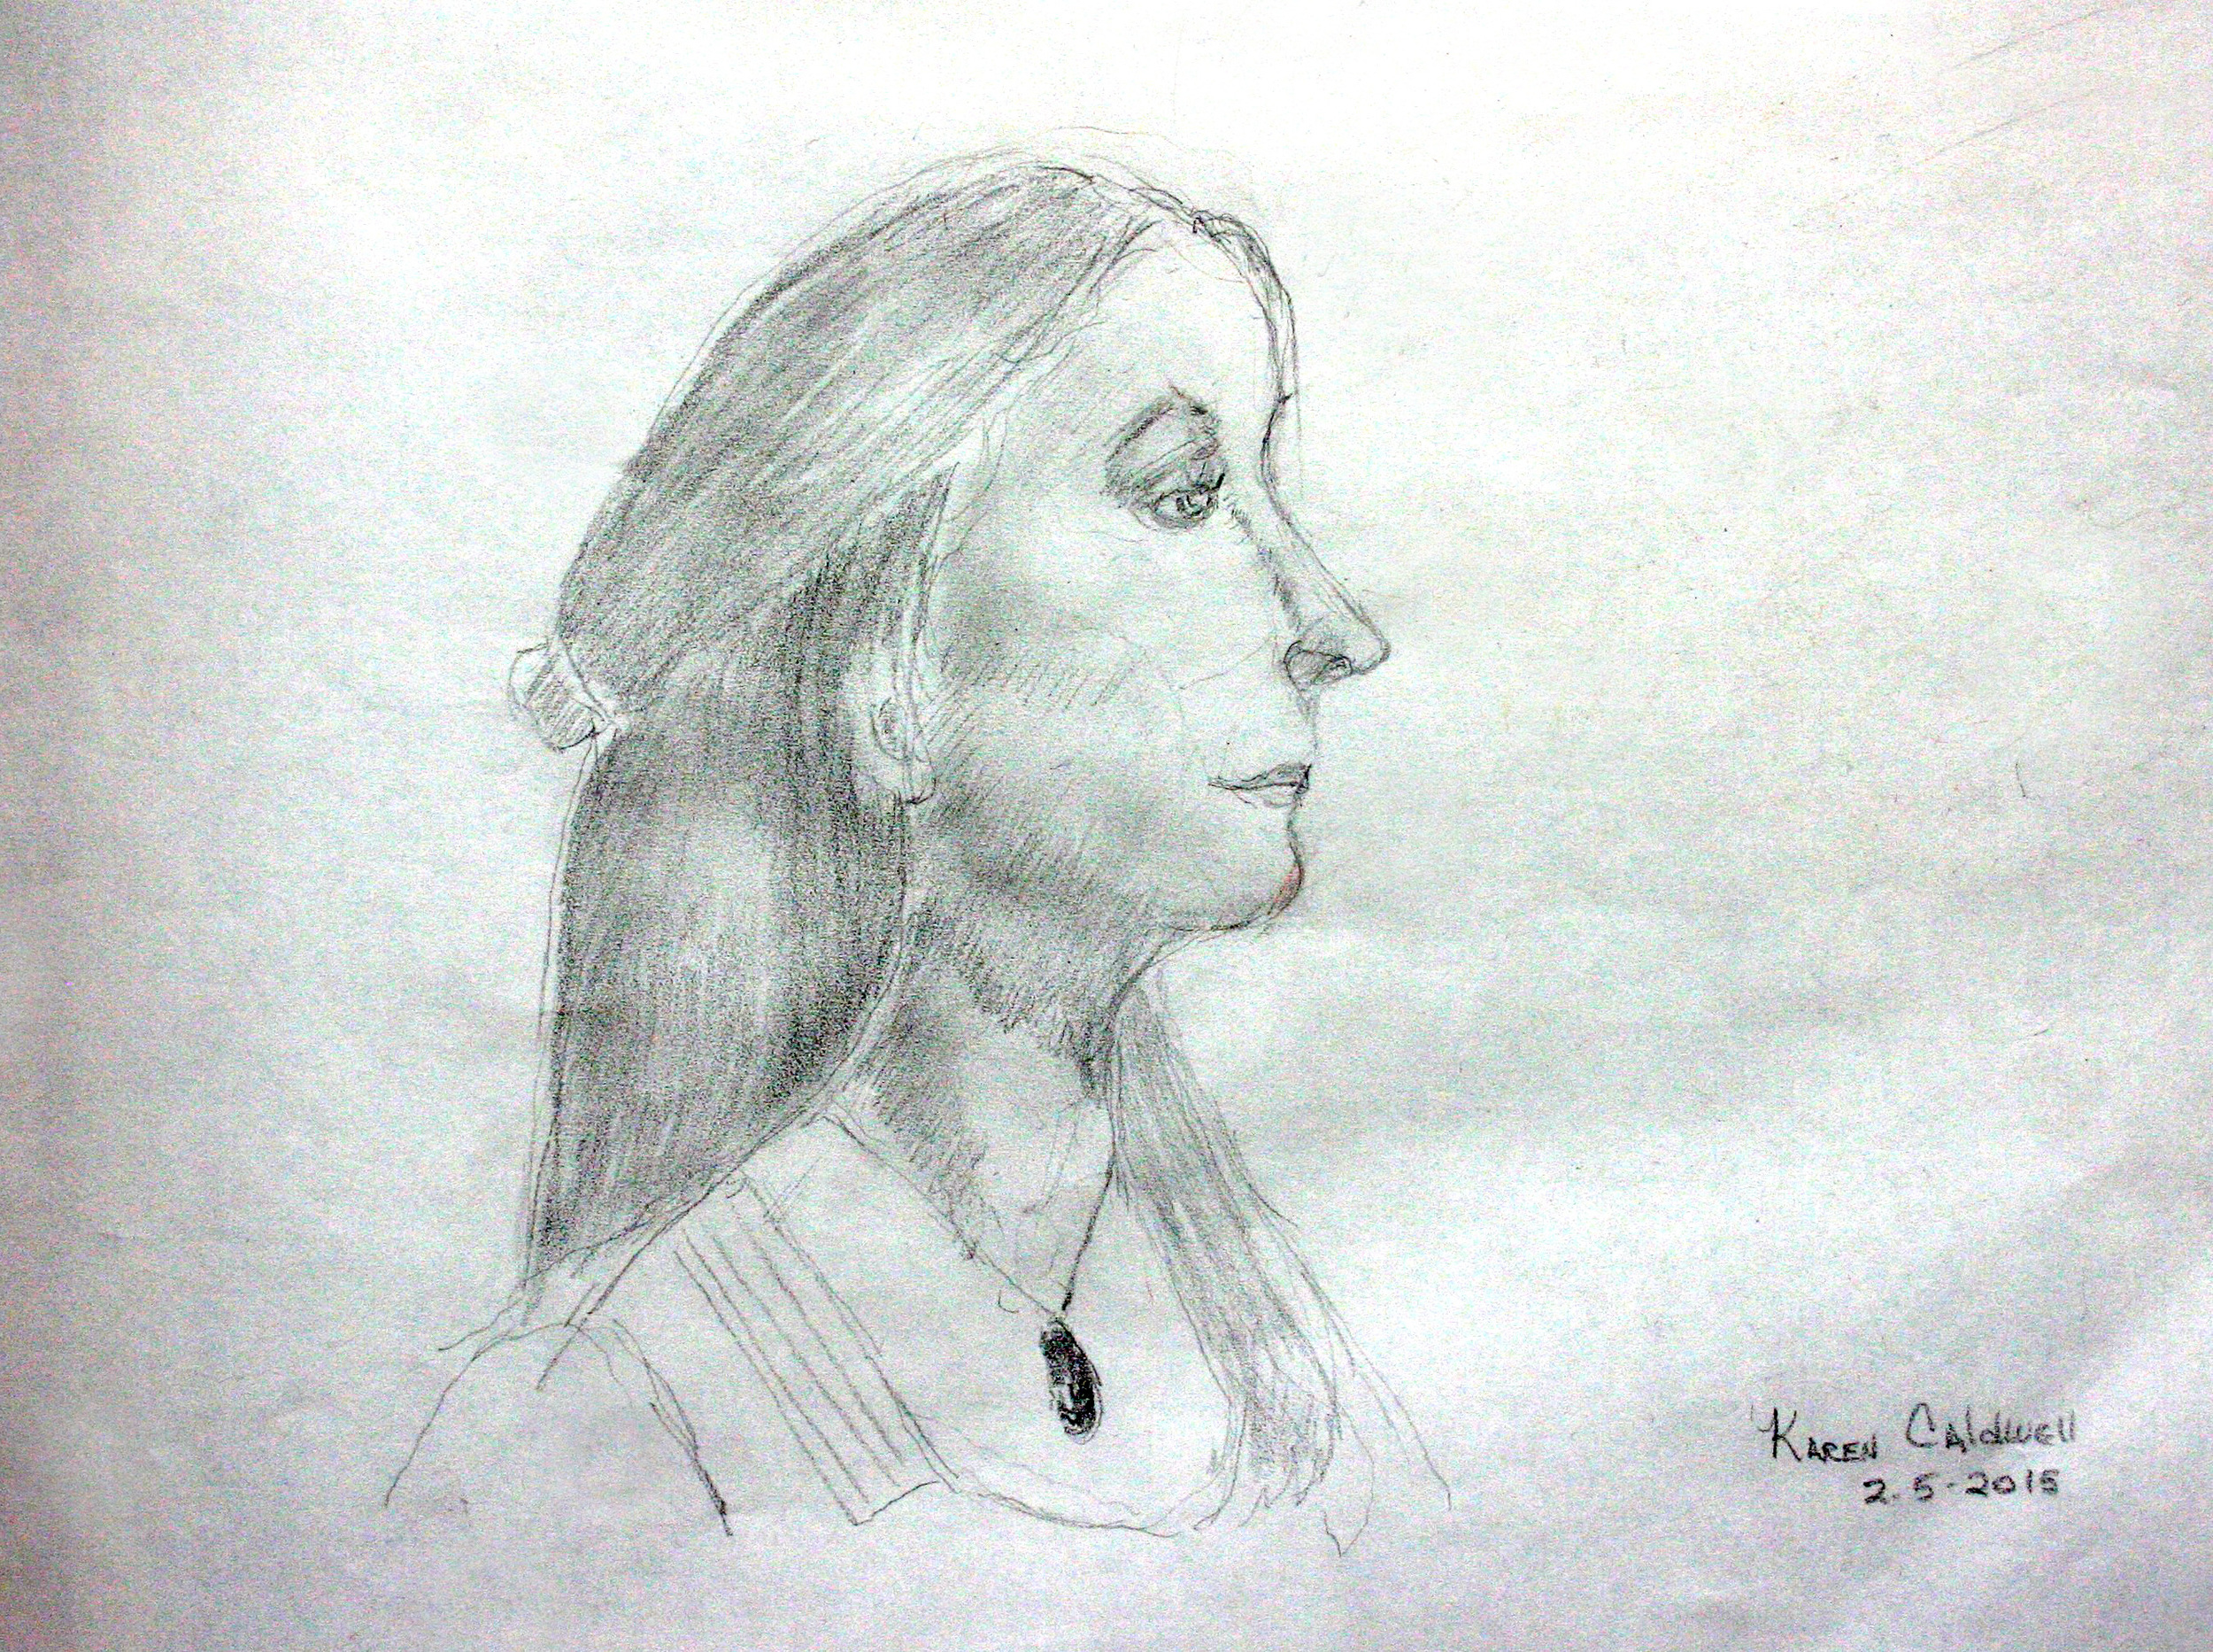 Karen Caldwell did this hour drawing .